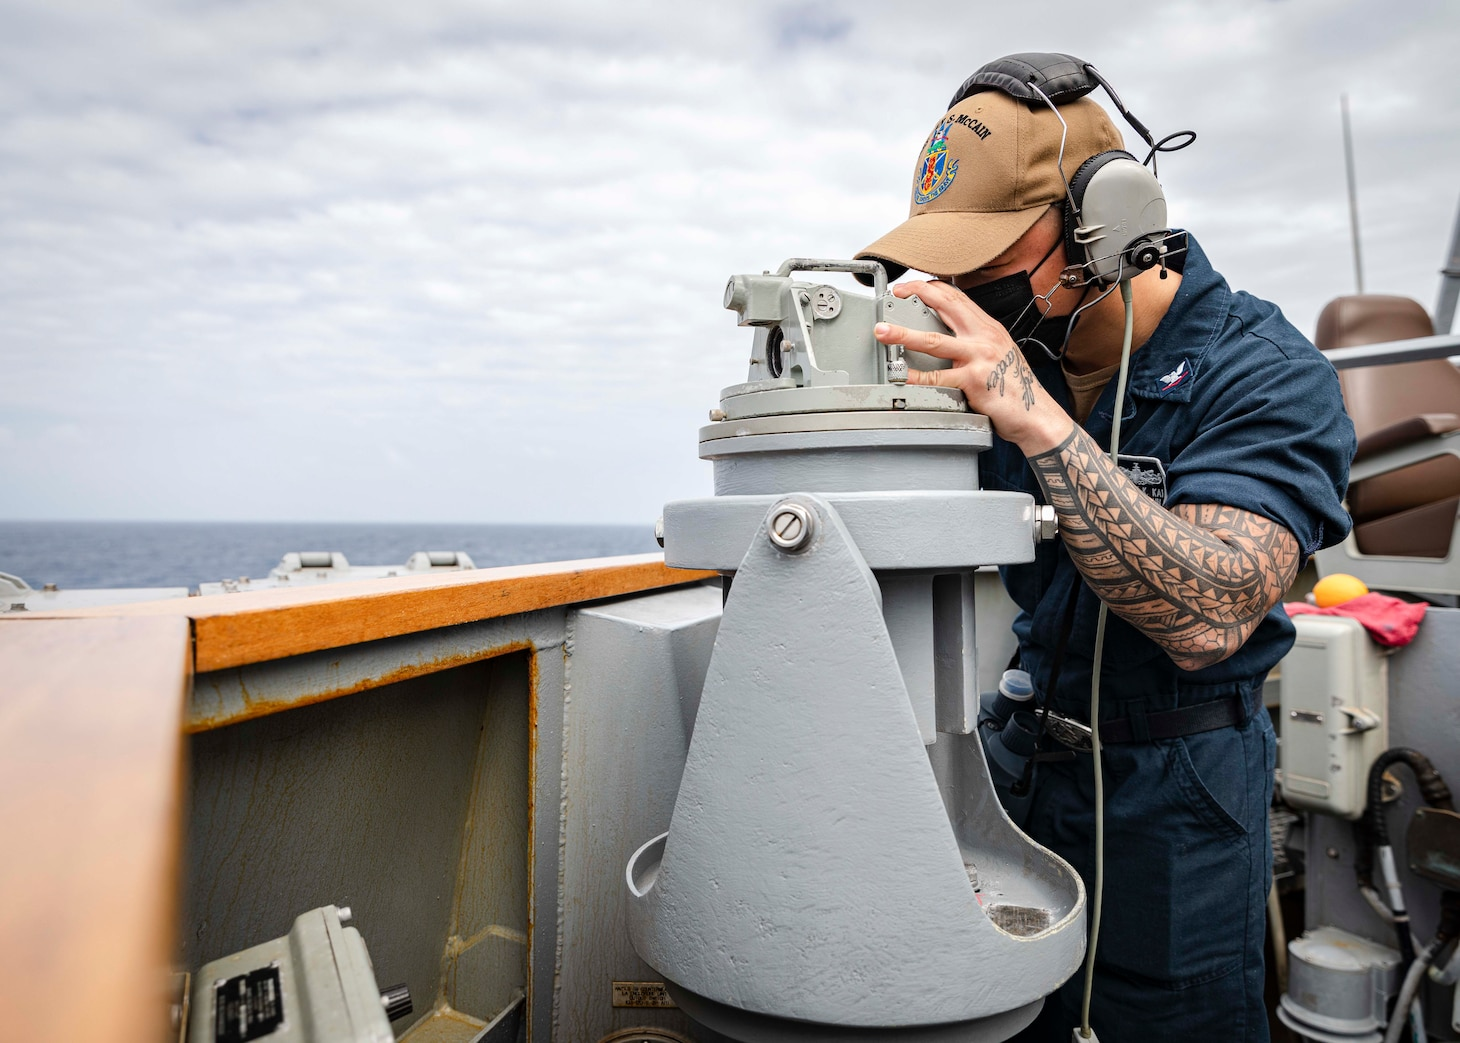 PARACEL ISLANDS, SOUTH CHINA SEA (Feb. 05, 2021) Boatswain's Mate 3rd Class Zachary Kai, from Kau, Hawaii, looks through a telescopic alidade while standing watch on the bridge wing aboard the Arleigh Burke-class guided-missile destroyer USS John S. McCain (DDG 56) as the ship conducts routine underway operations. McCain is forward-deployed to the U.S. 7th Fleet area of operations in support of security and stability in the Indo-Pacific region. (U.S. Navy photo by Mass Communication Specialist 2nd Class Markus Castaneda)